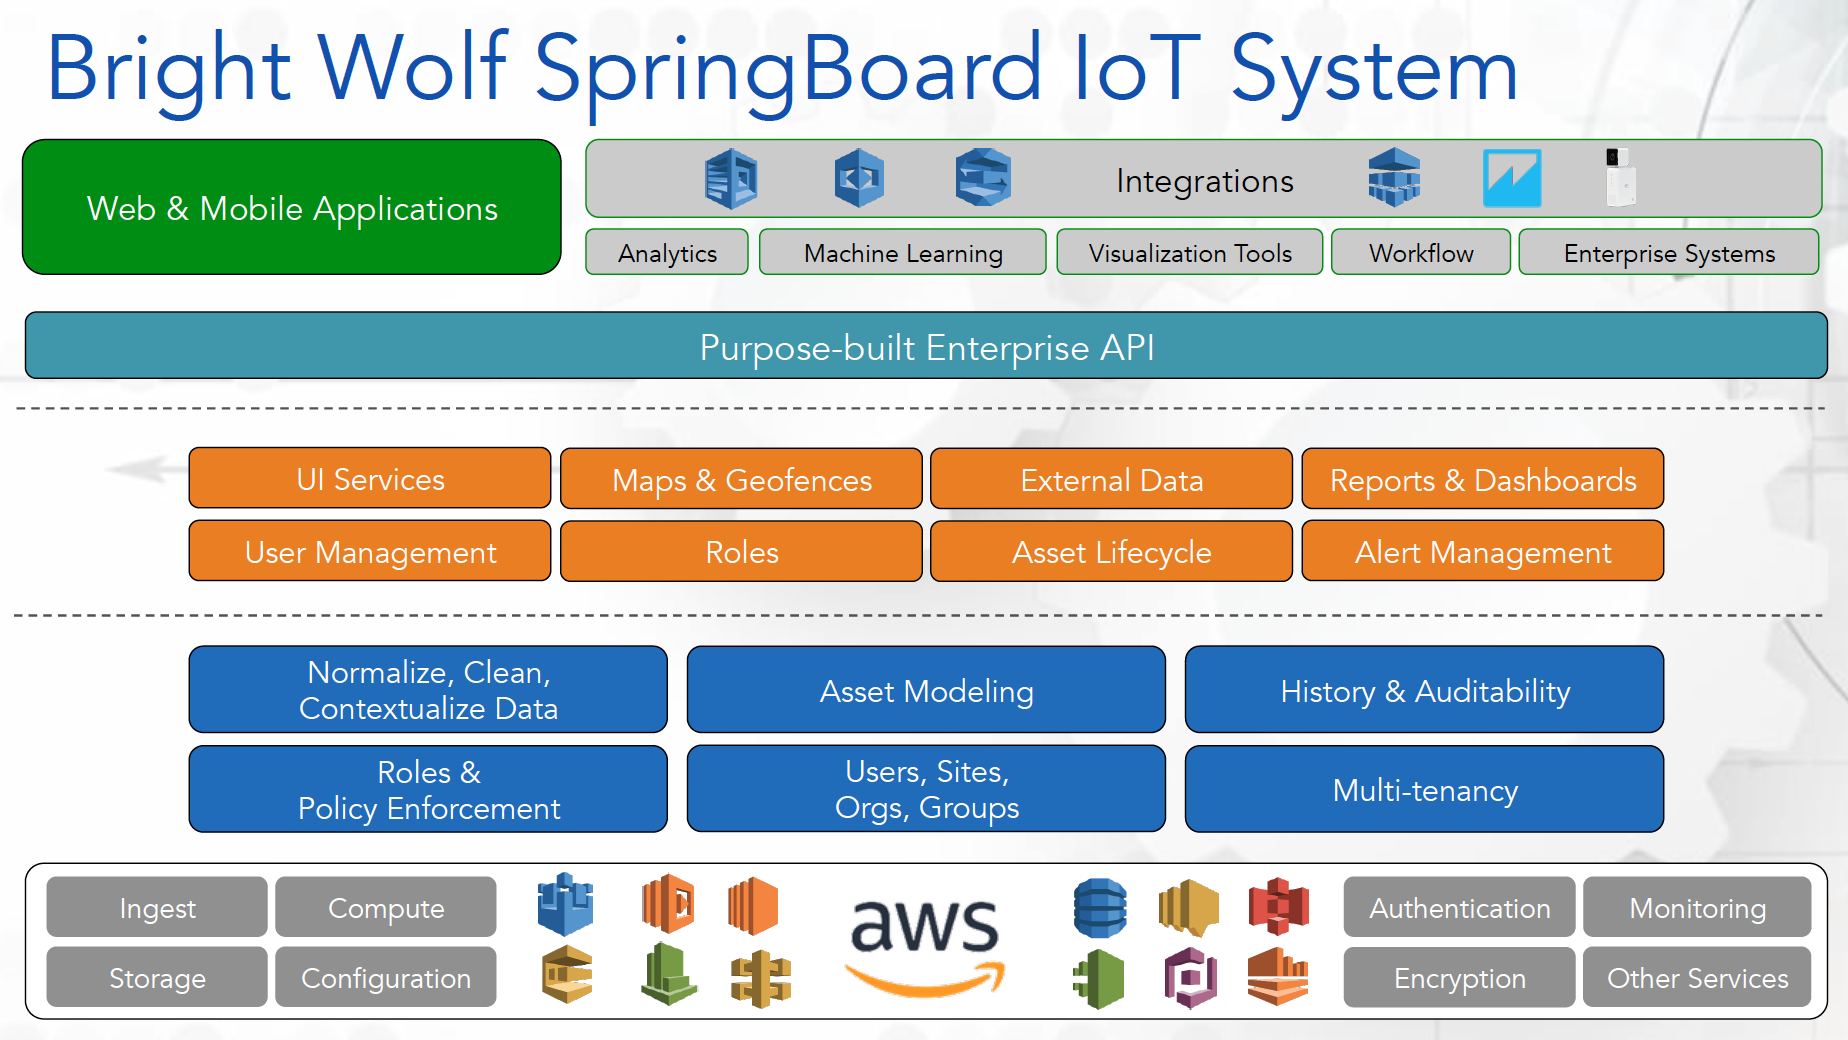 iot-Bright-Wolf-SpringBoard-IoT-System-graph-solutionspace